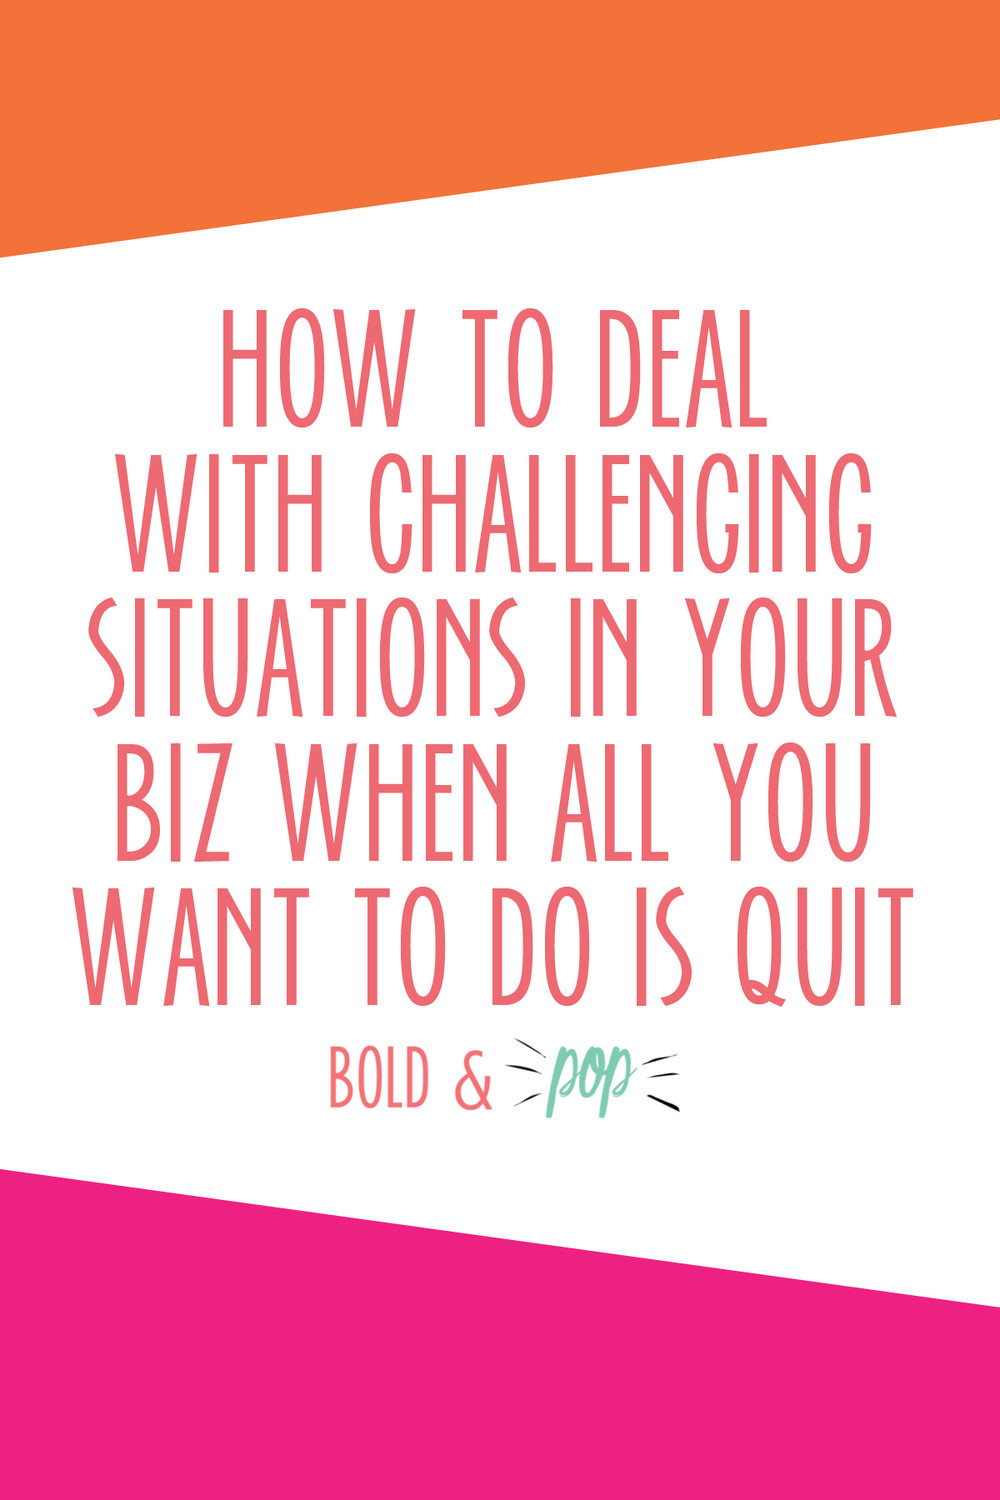 Bold & Pop : How To Deal With Challenging Situations in Your Business When All You Want to Do Is Quit